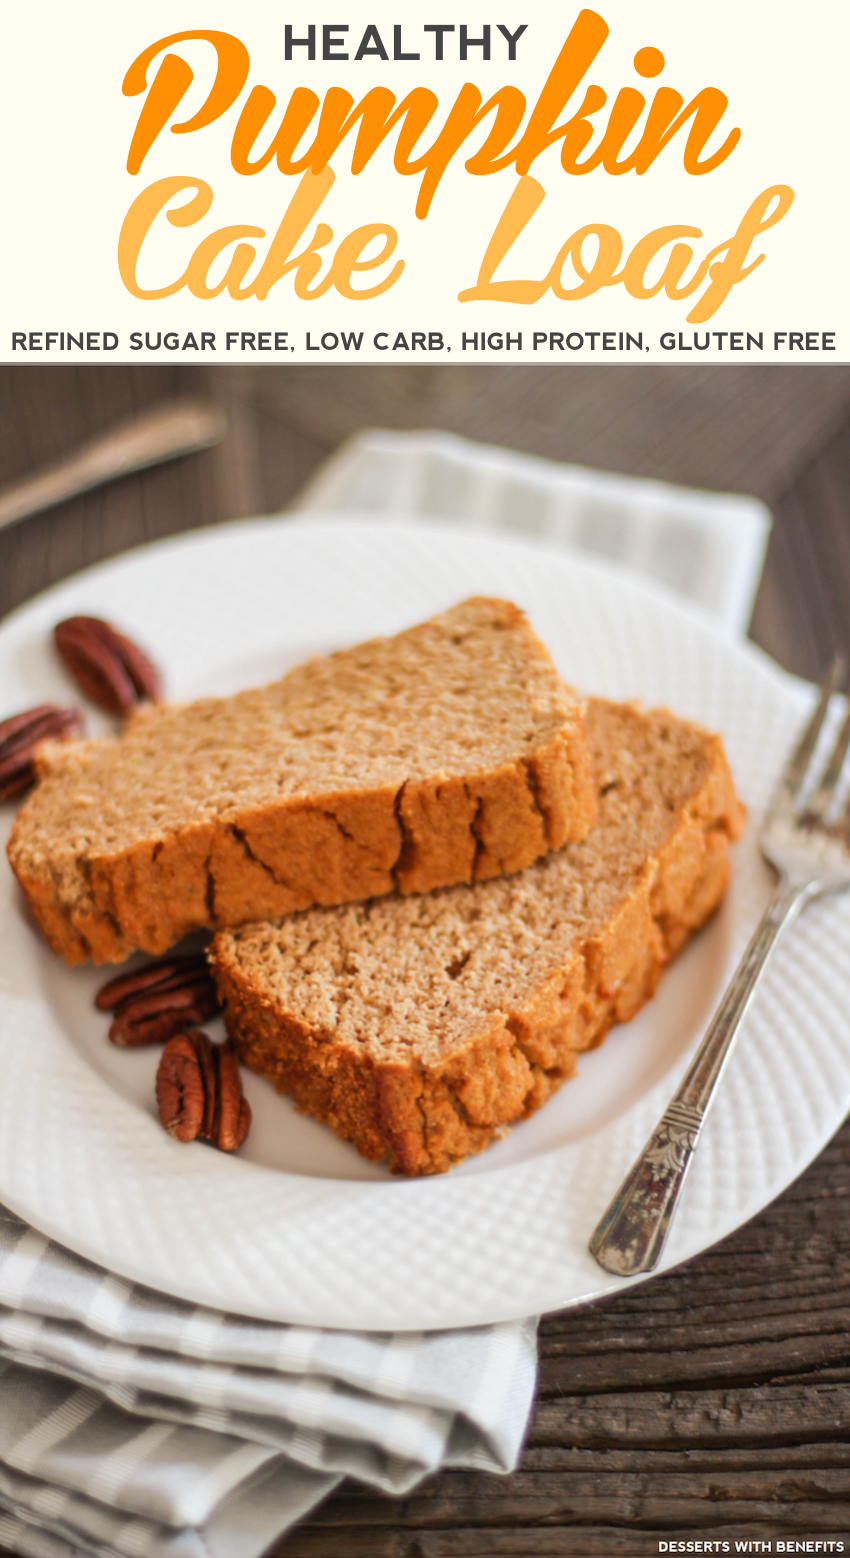 Healthy pumpkin cake loaf